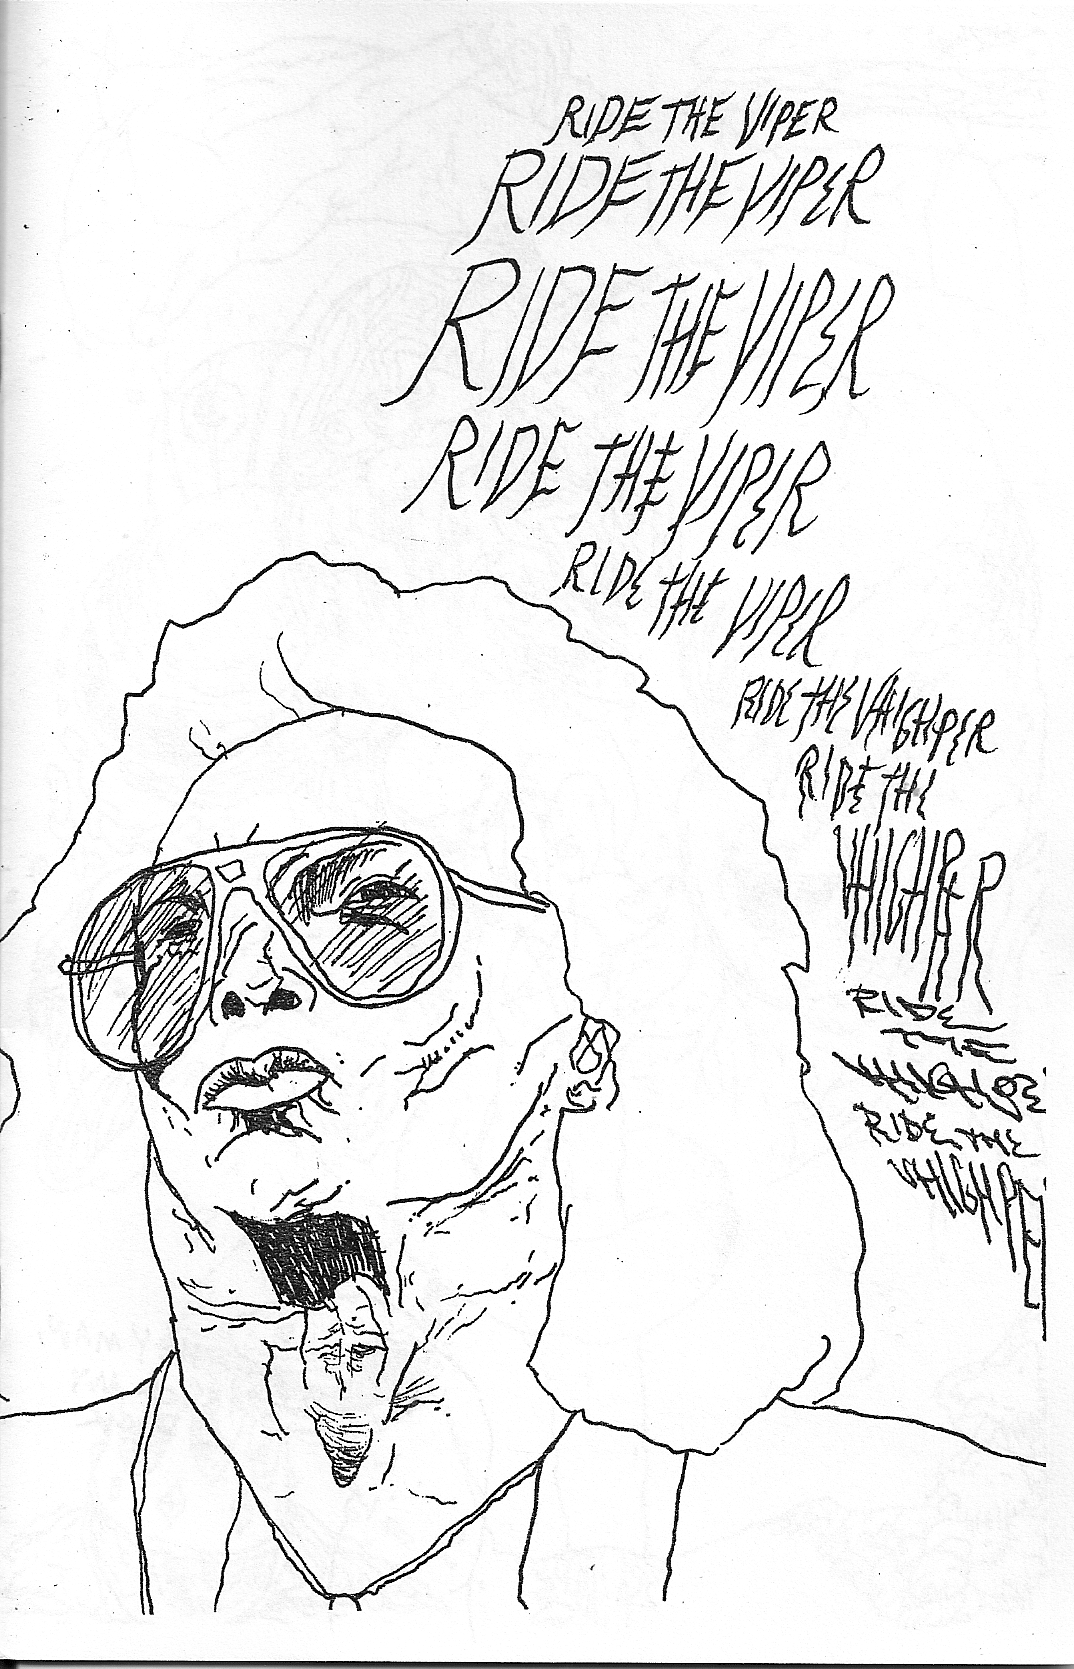 Ride The Viper zine Dan Rossiter